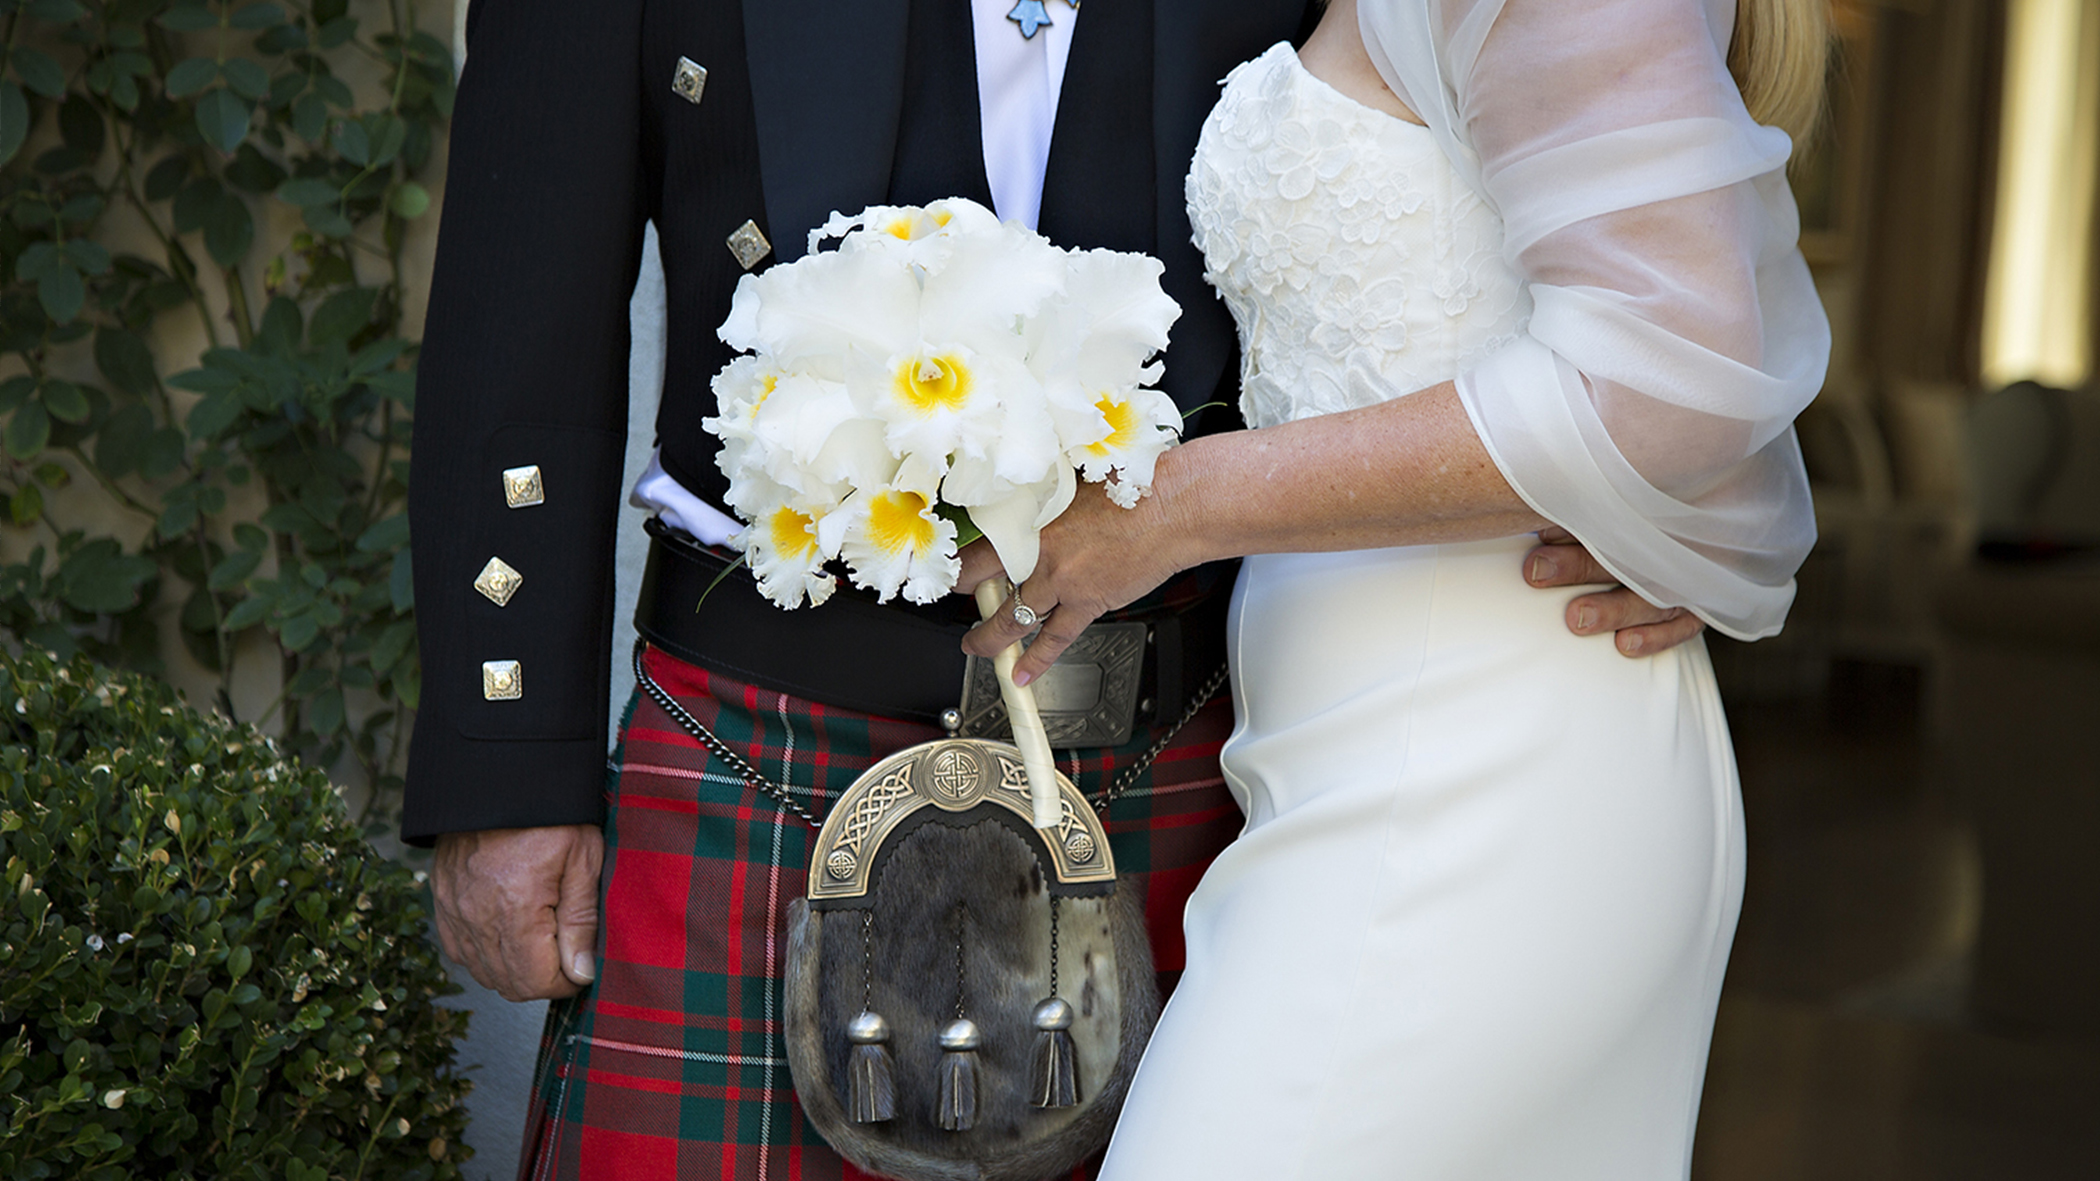 An image of a groom and bride who is holding a white flower bouquet